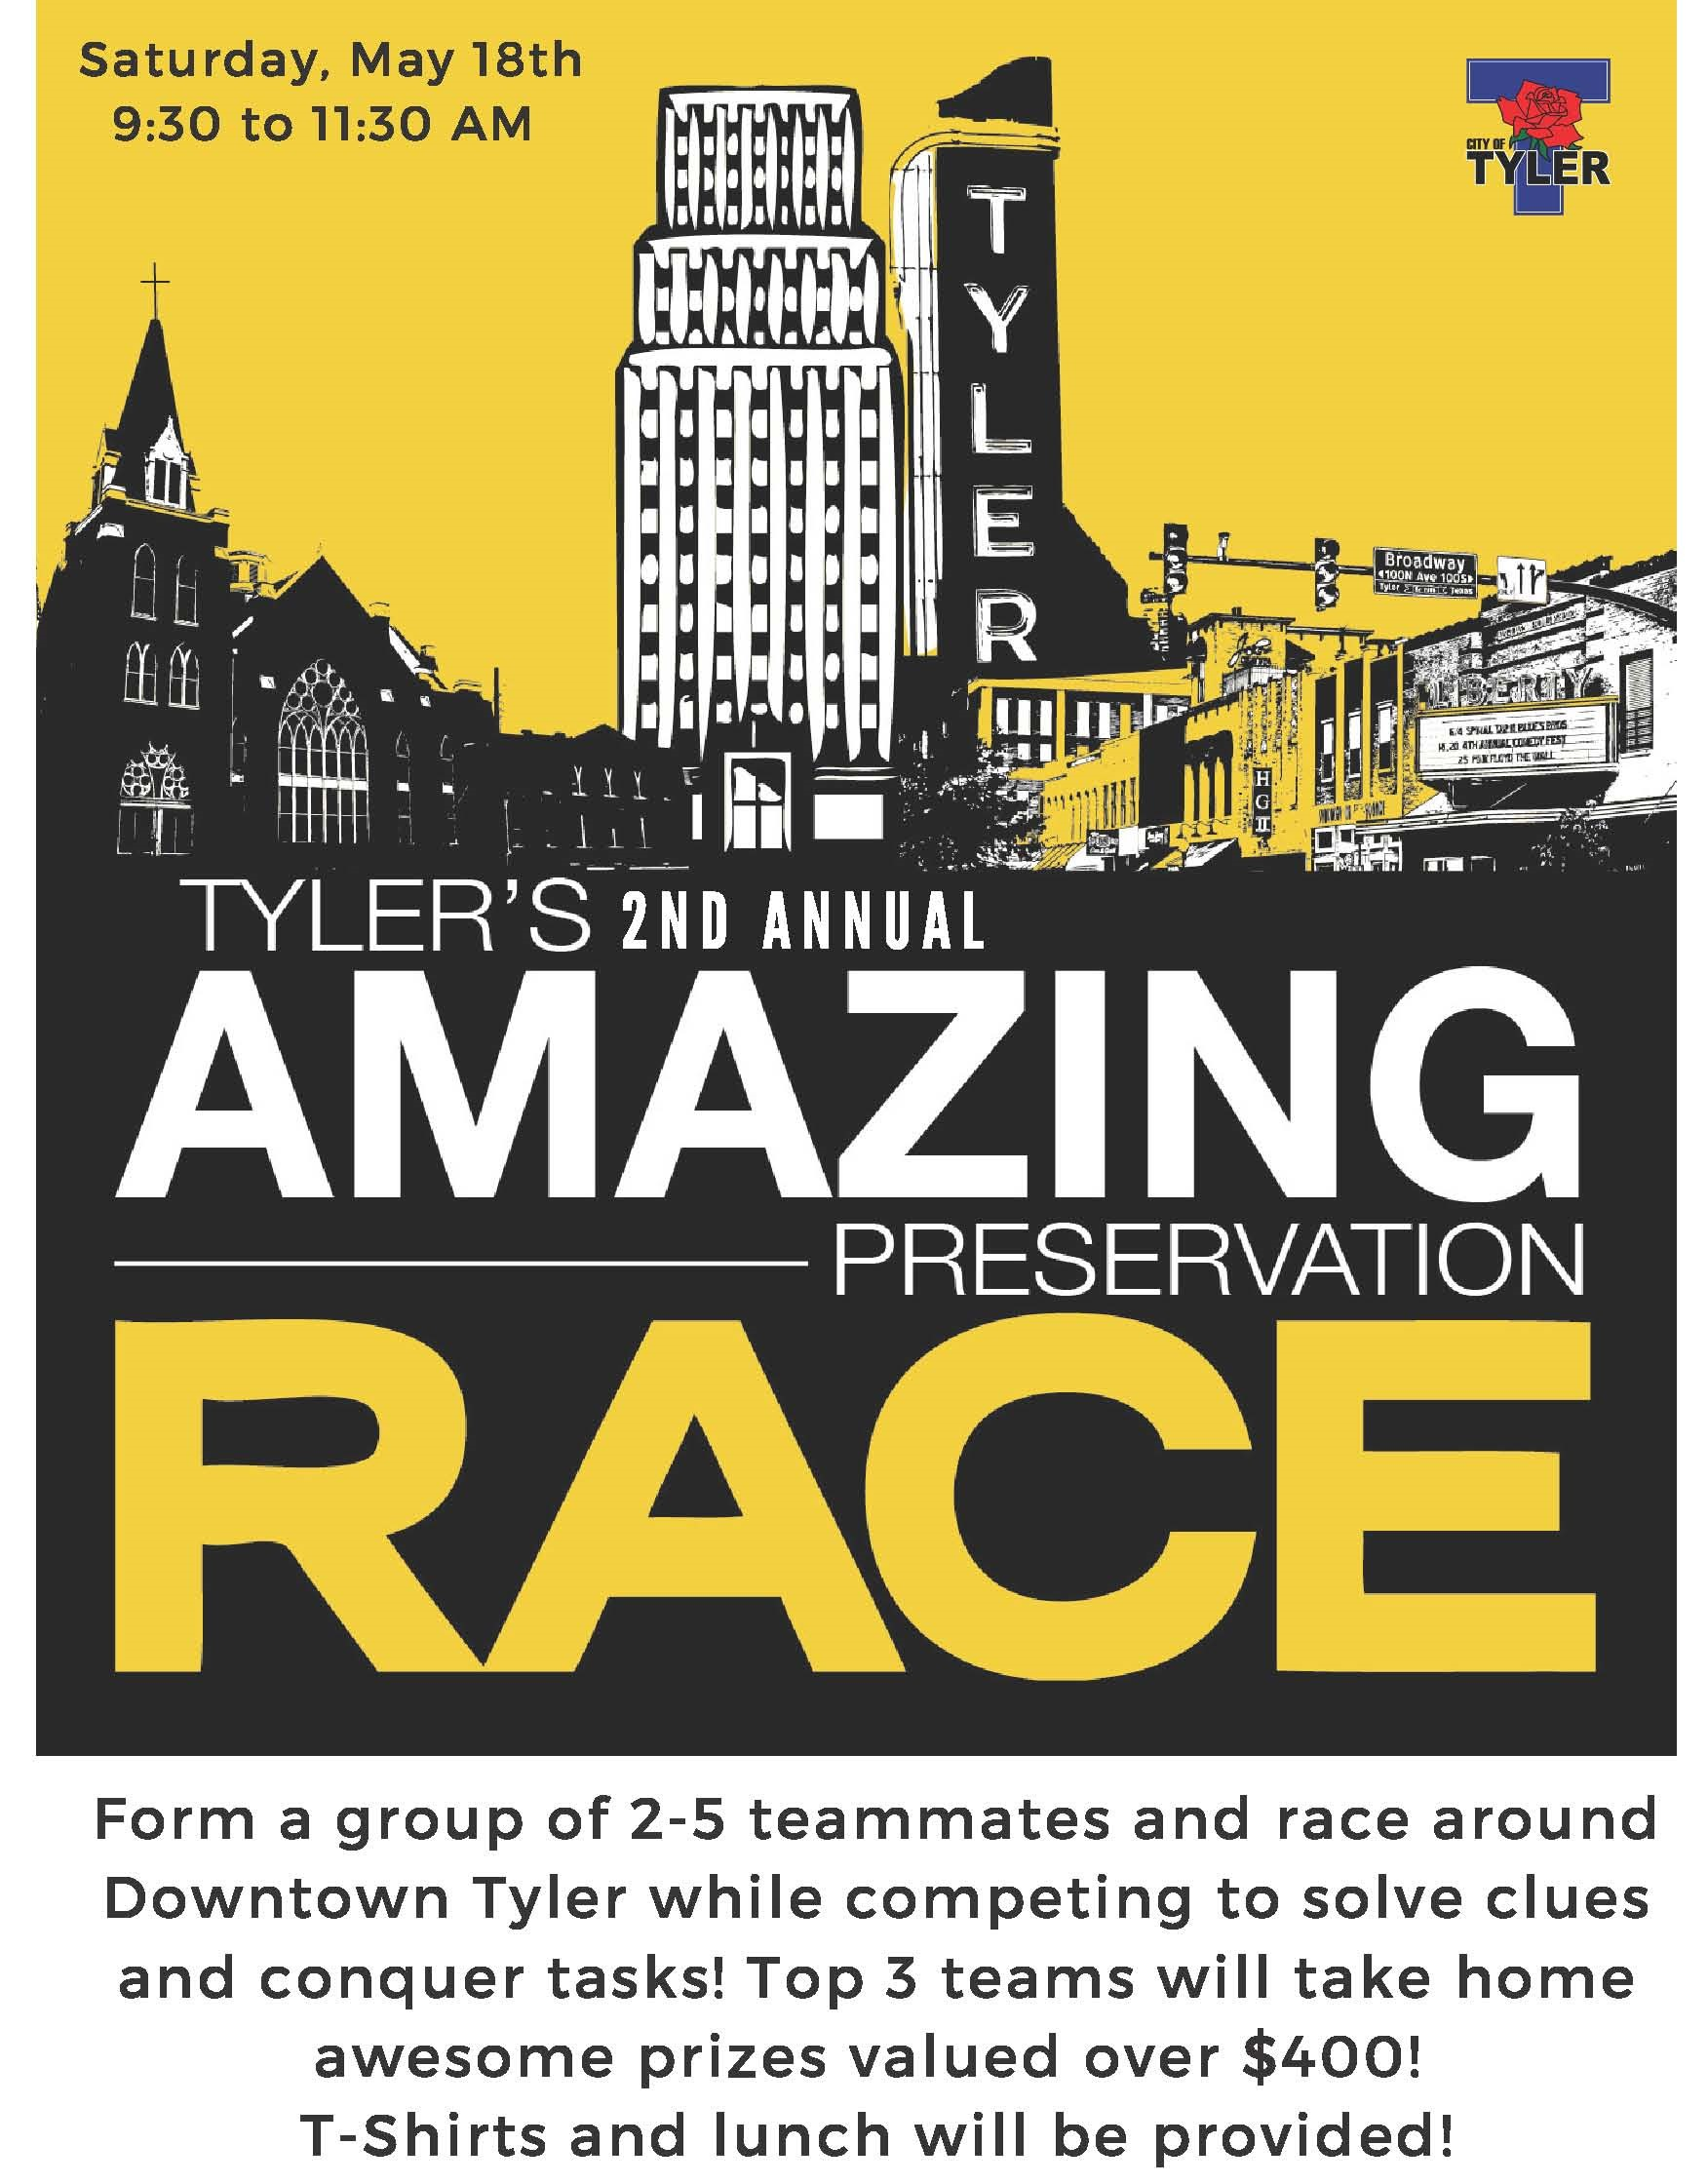 Tyler's Amazing Preservation Race flyer